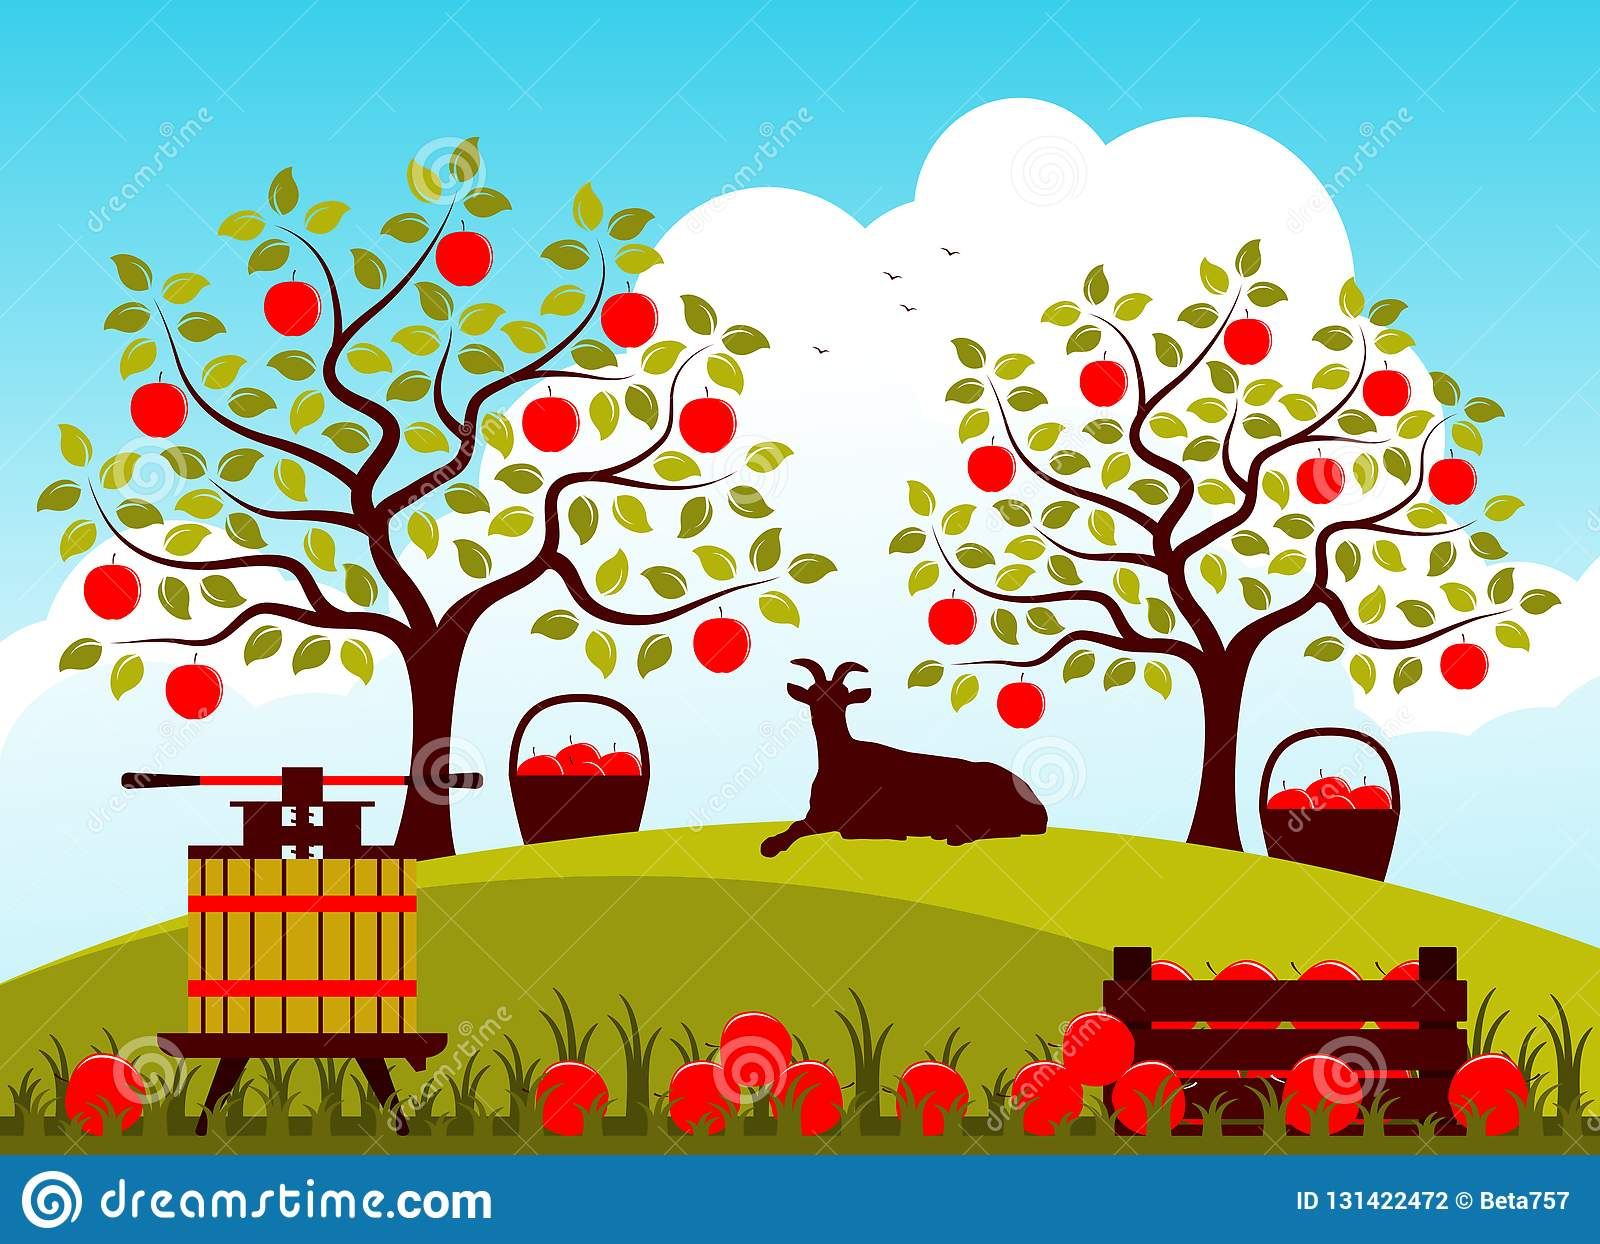 Apple harvest stock vector. Illustration of summer, farm.